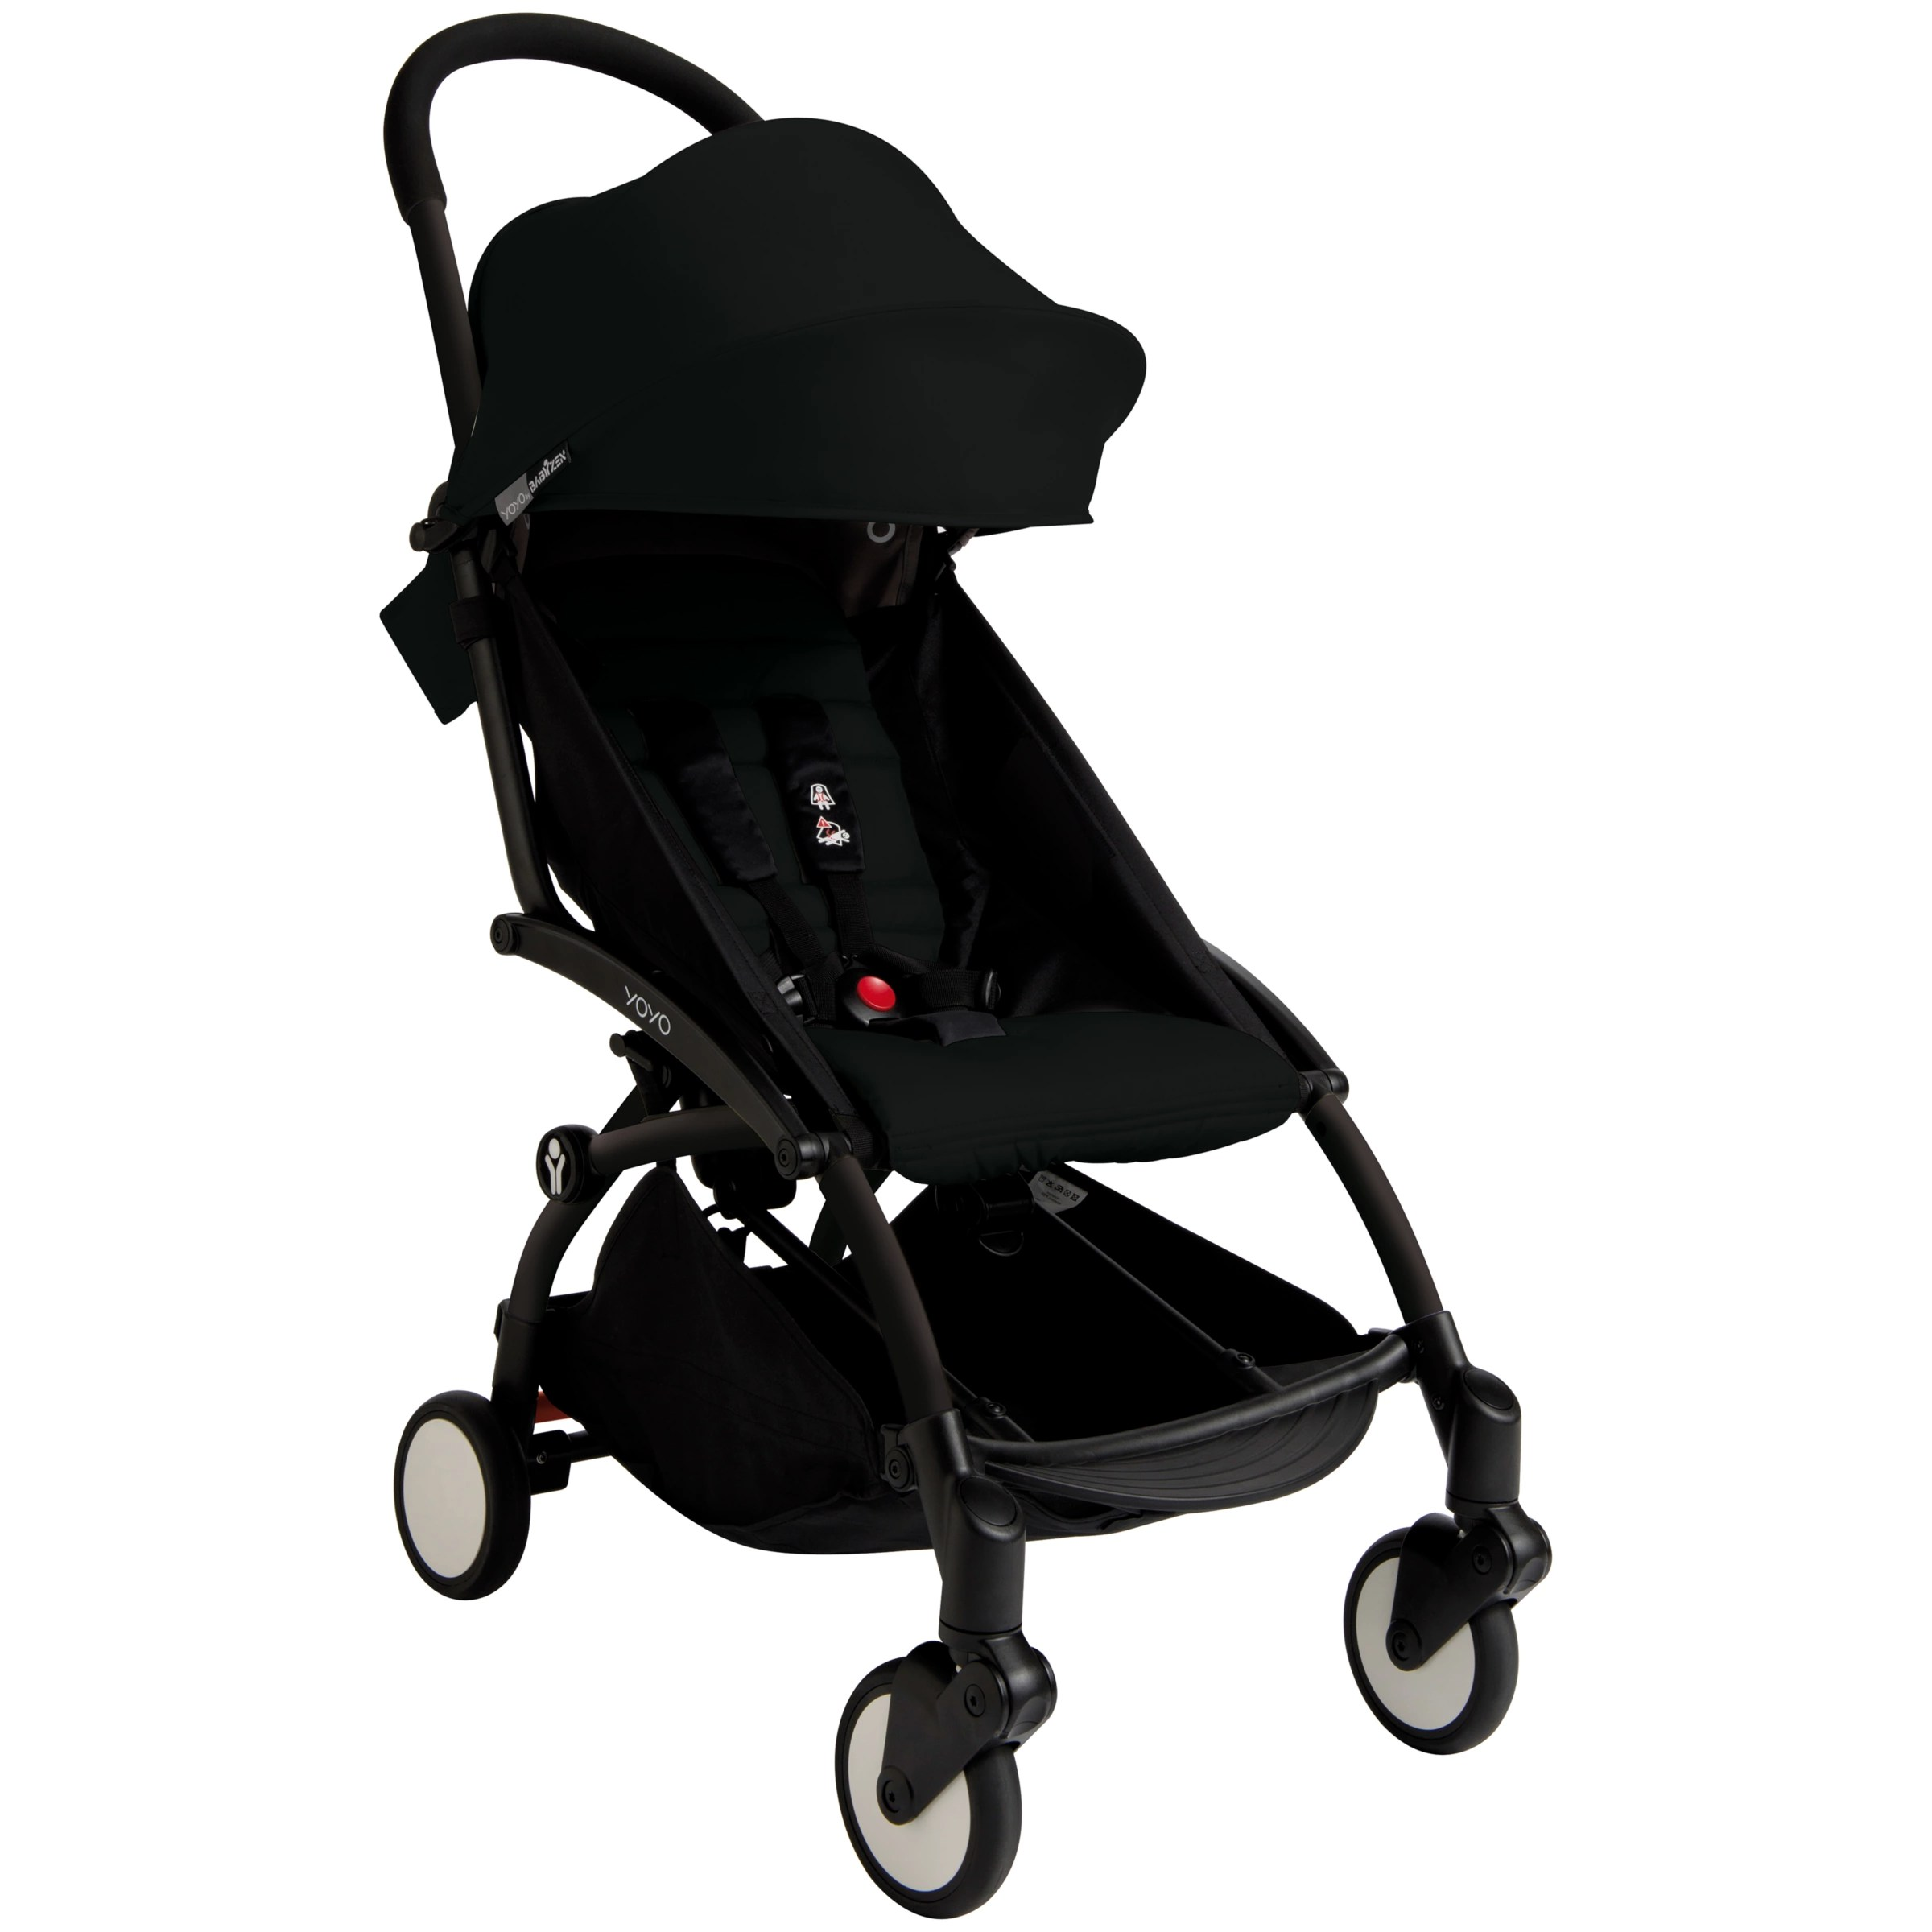 Babyzen Yoyo In Berlin Babyzen Yoyo Pushchair Black Black